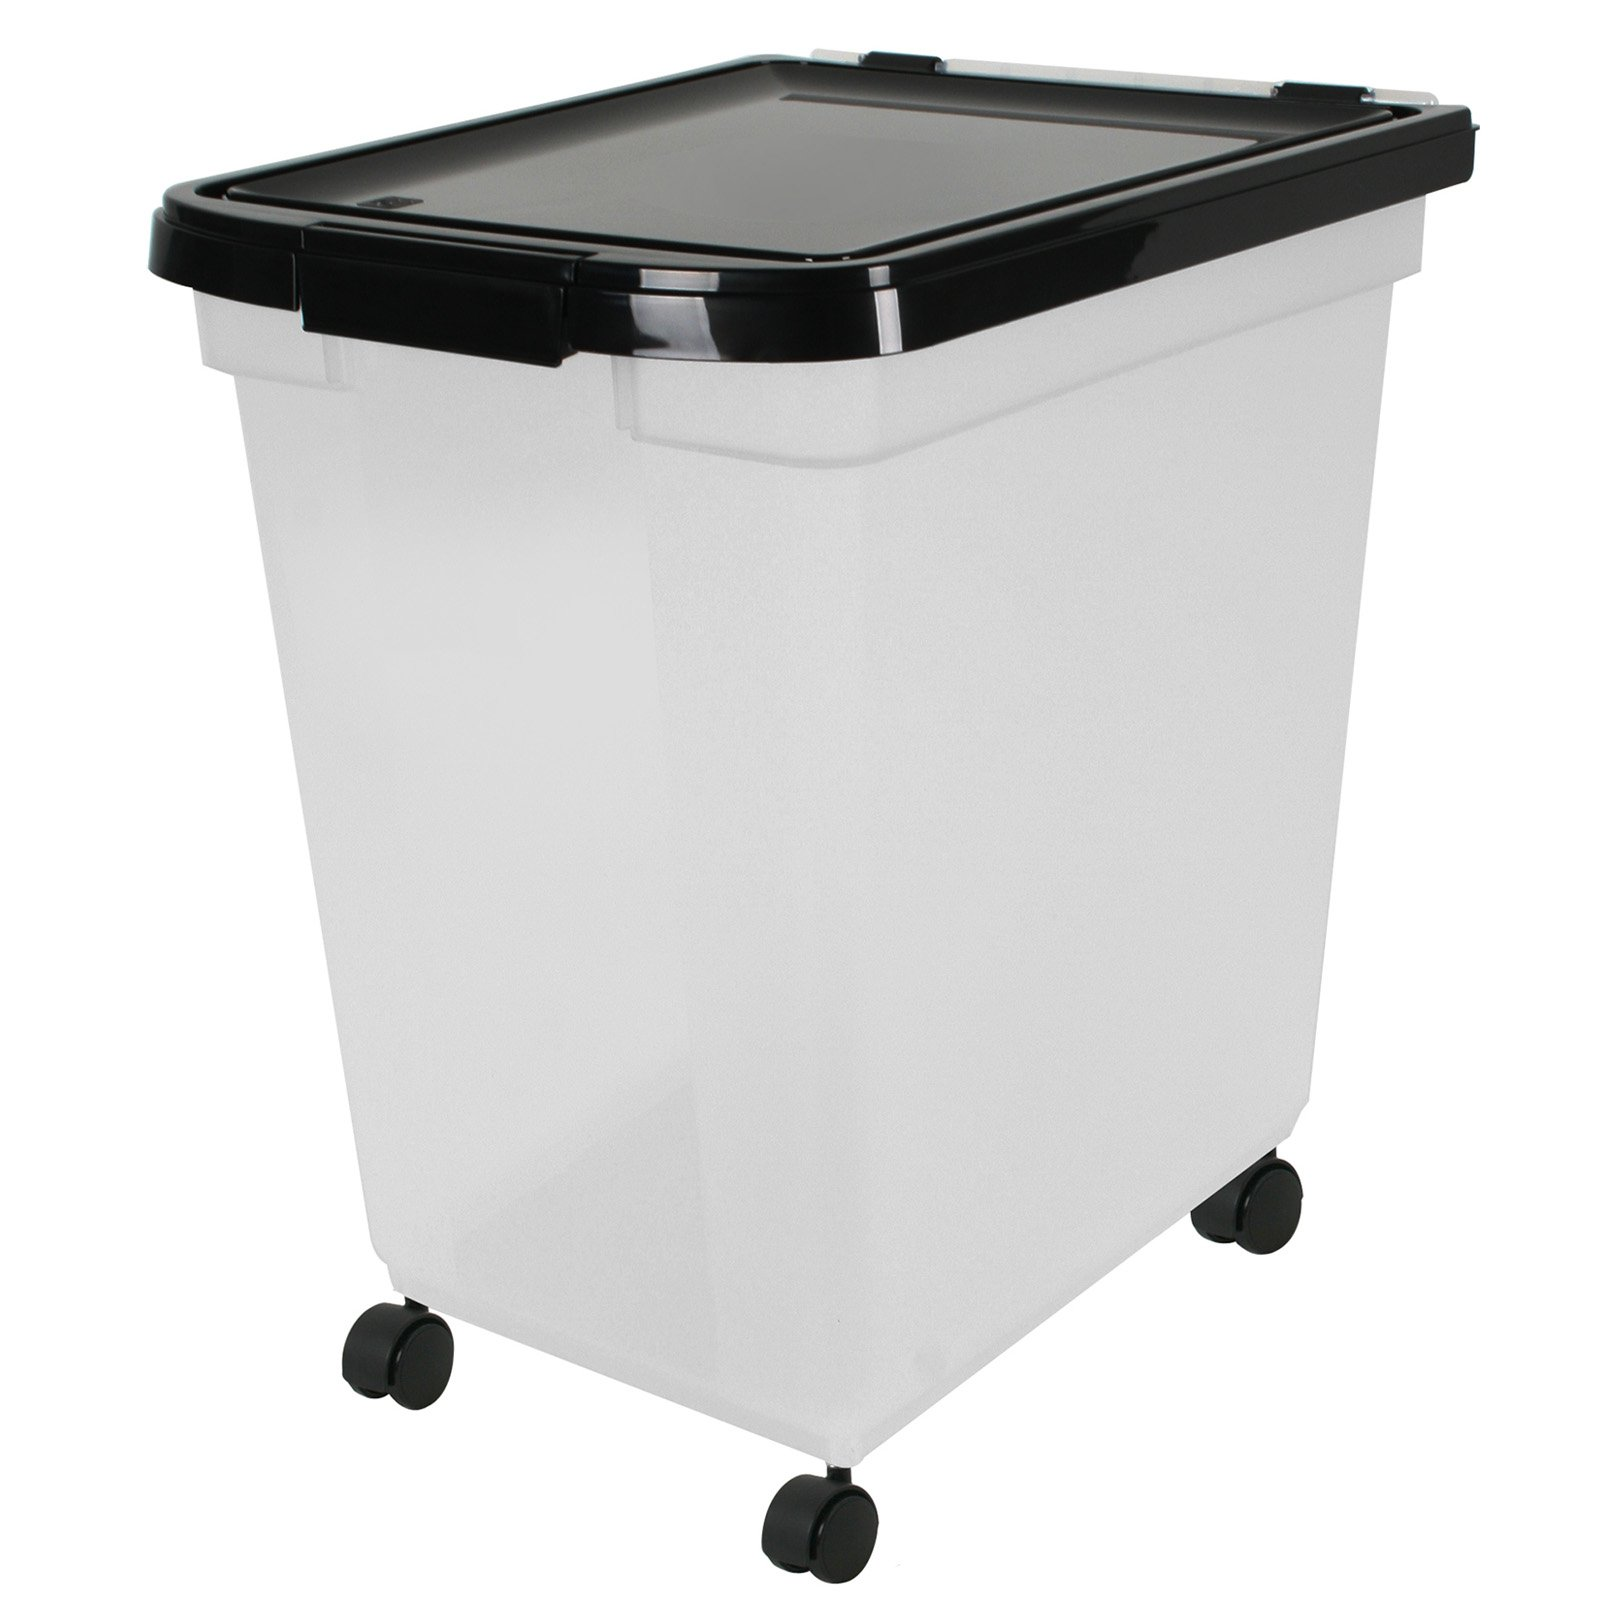 Iris Usa 50 Lb Airtight Pet Food Storage Container With Casters